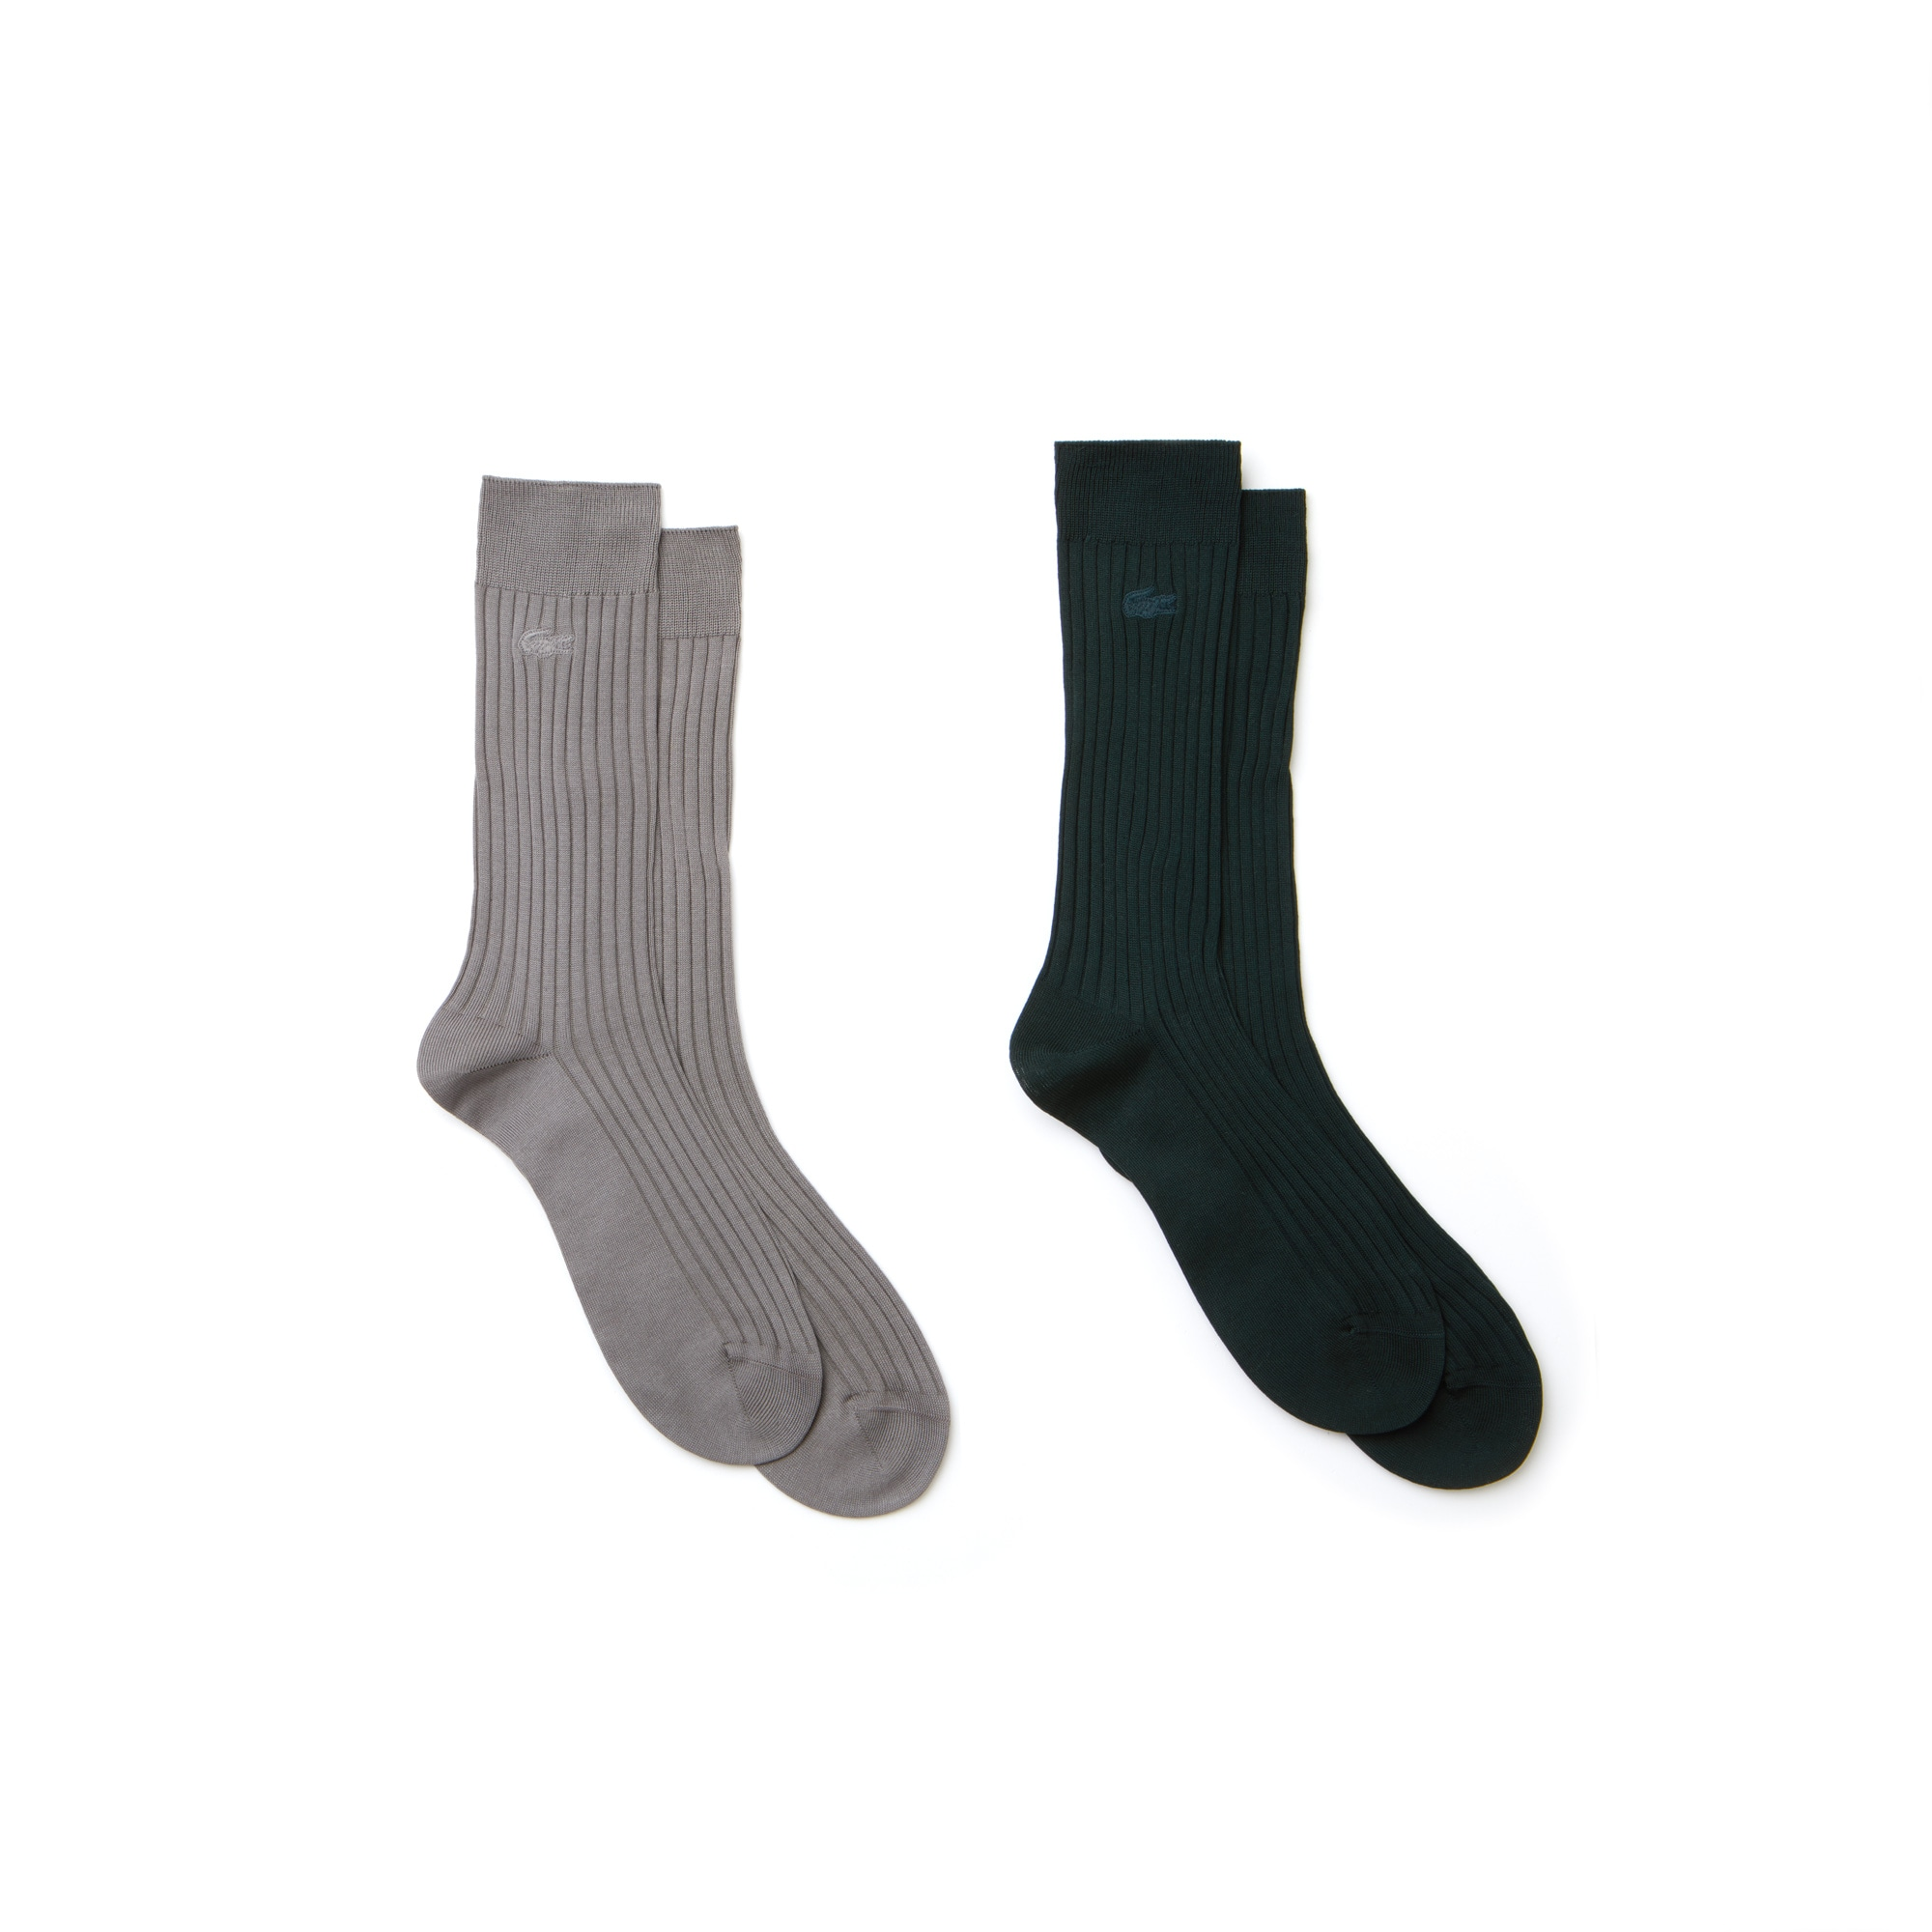 Men's Ribbed Socks